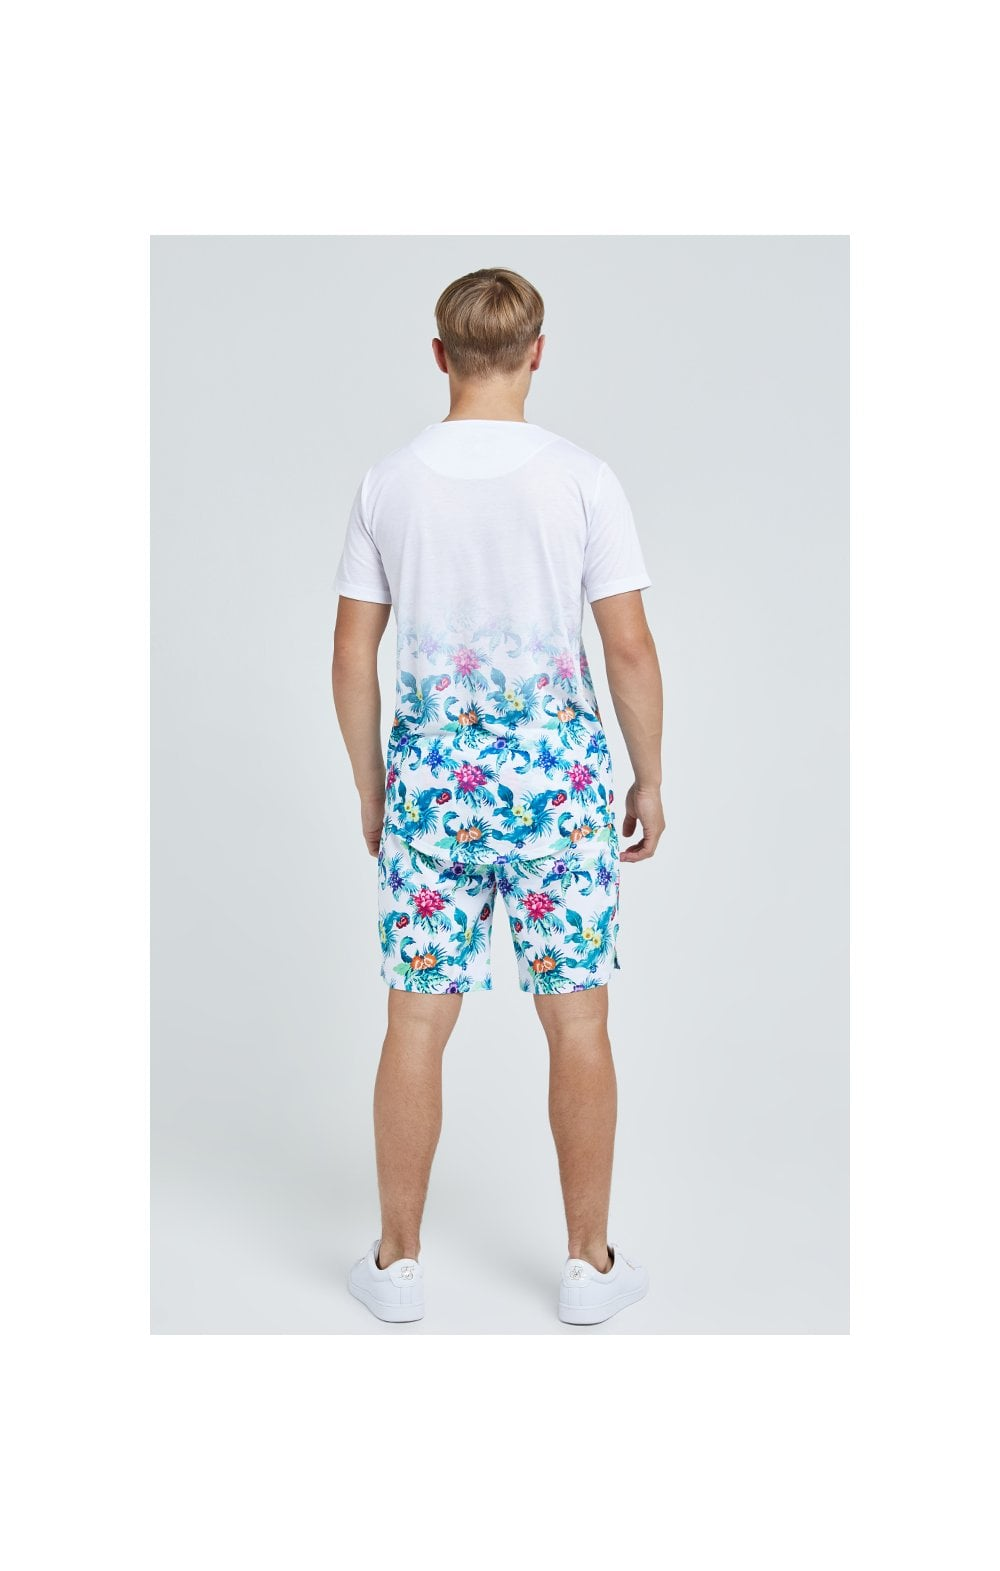 Load image into Gallery viewer, Illusive London Swim Shorts - White & Floral (8)